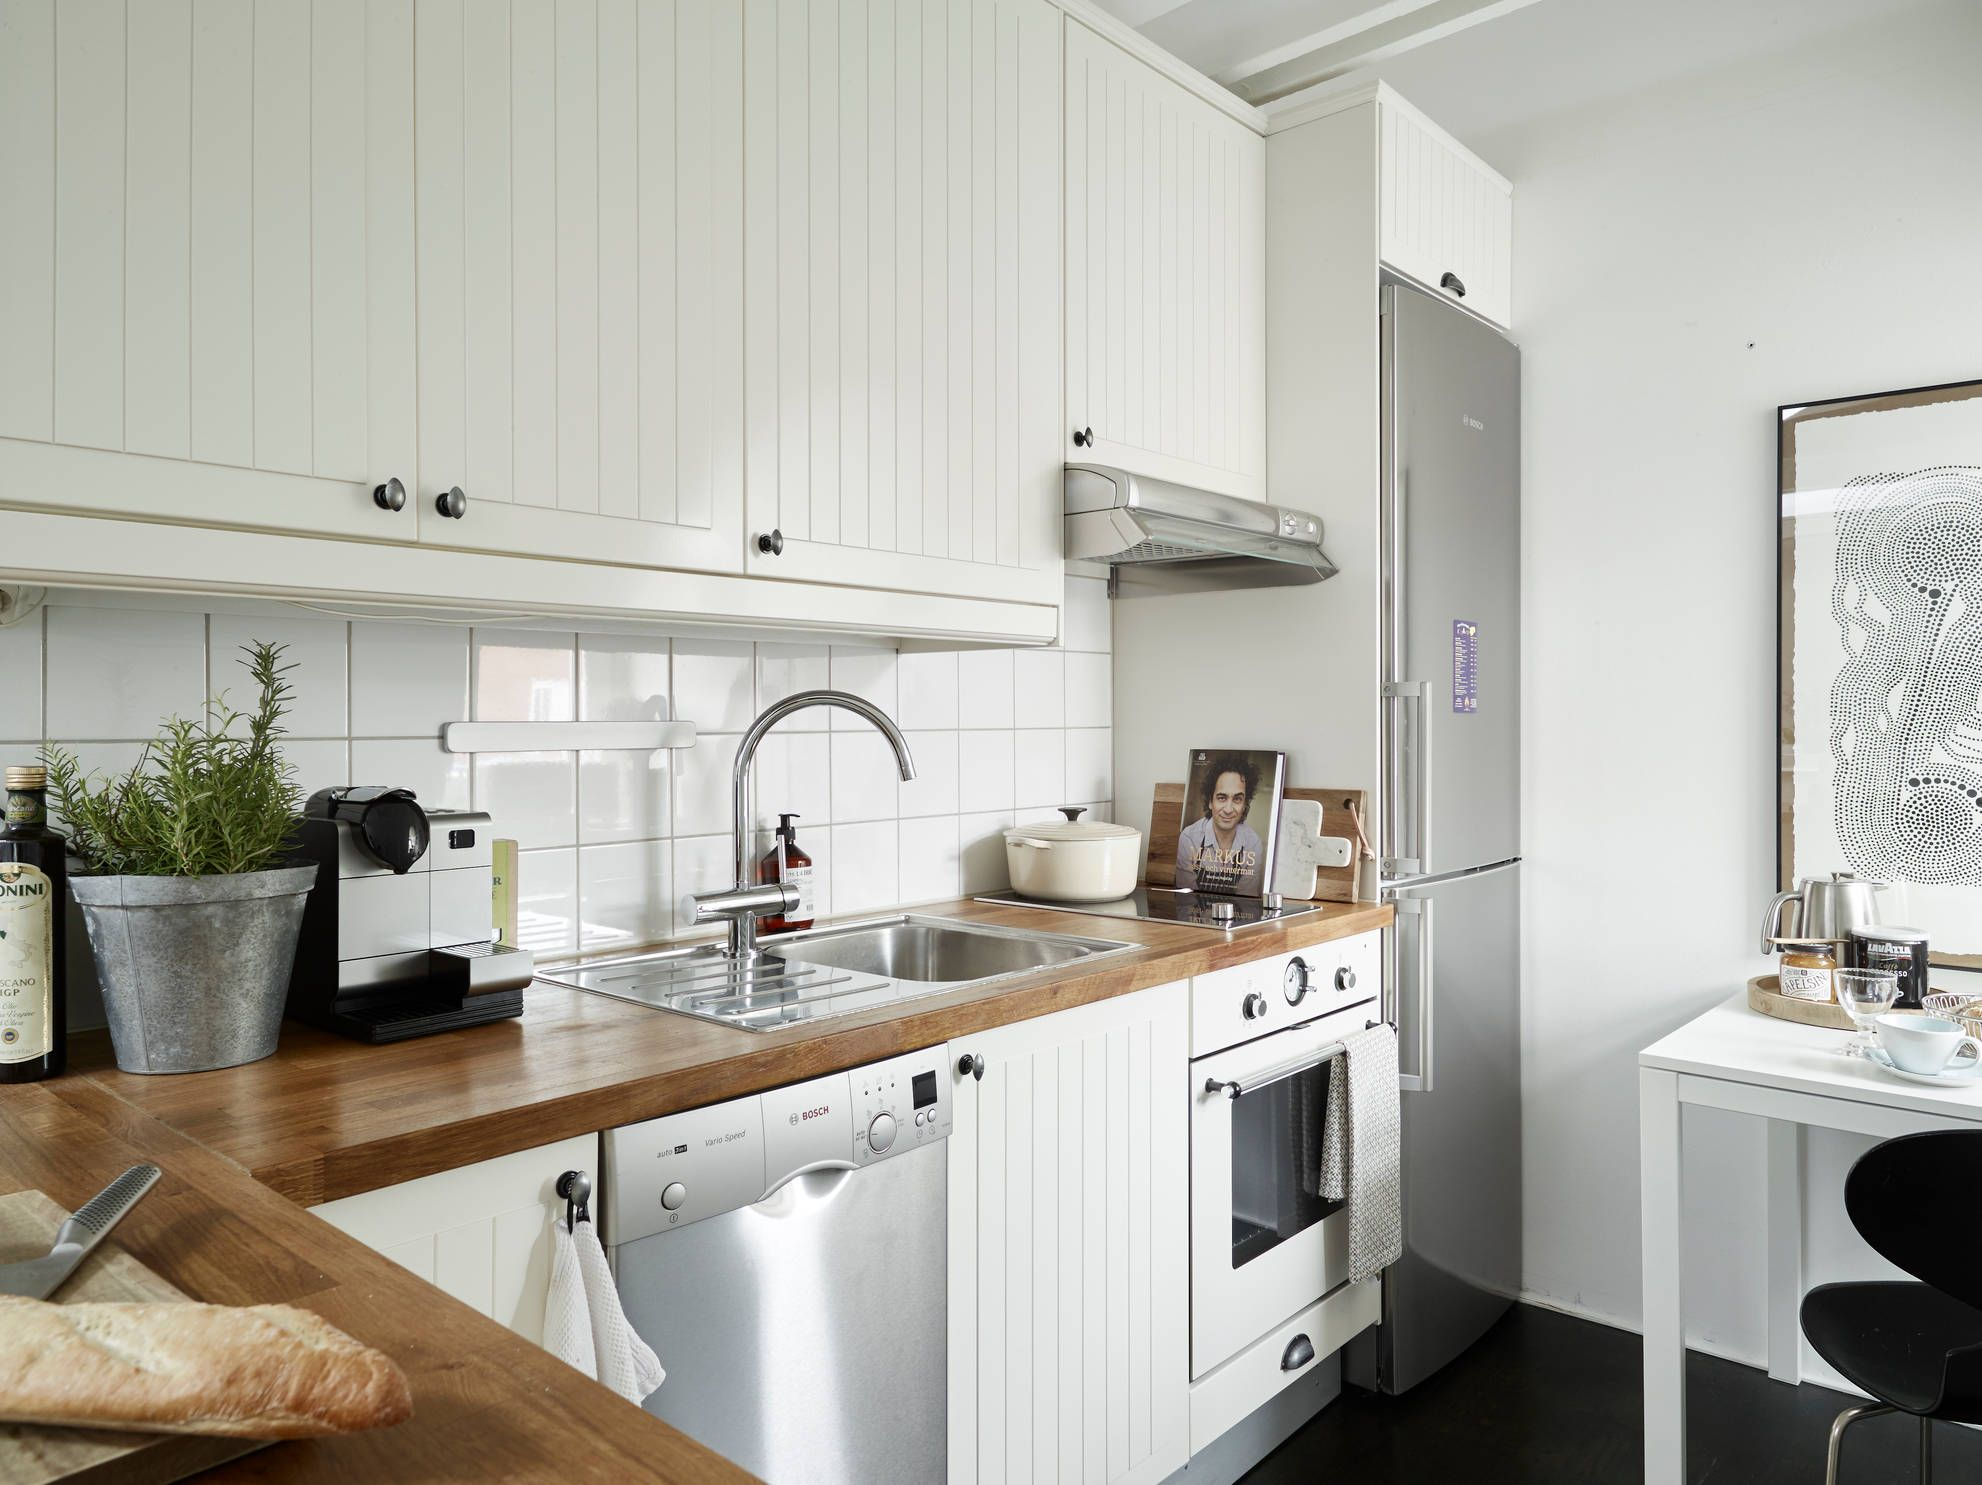 Placing Appliances In A Small Kitchen, You Need To Watch, To Avoid Clutter  And Narrow Passages. The Best Option Is Built In Appliances, Creating With  ...